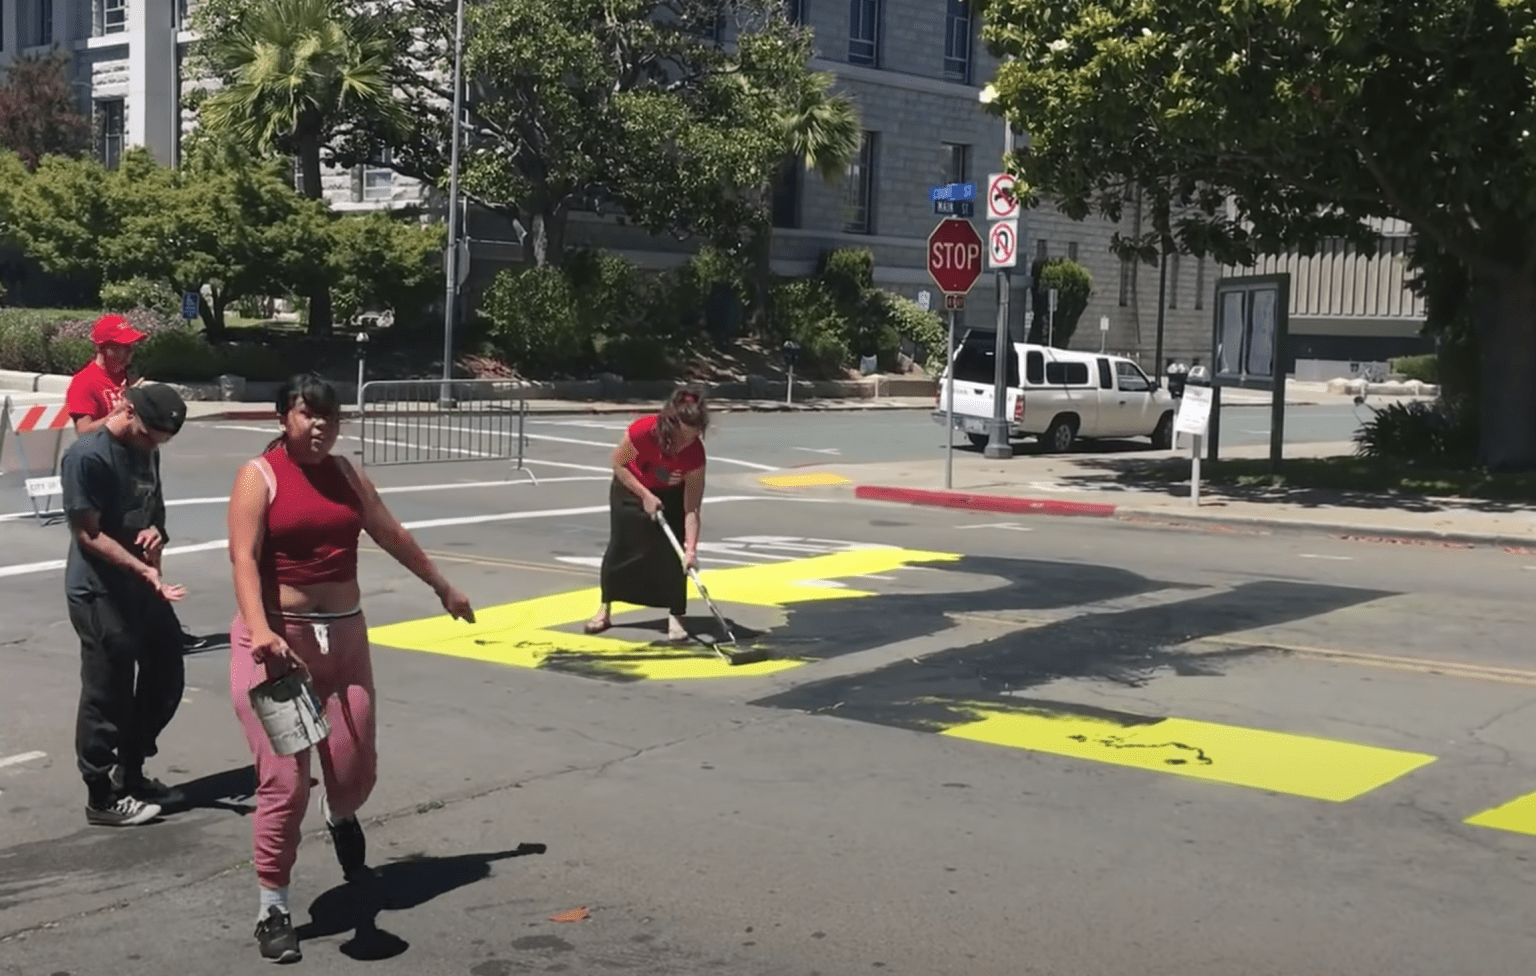 California residents charged with hate crime after painting over BLM mural (but destroying monuments is ok?)